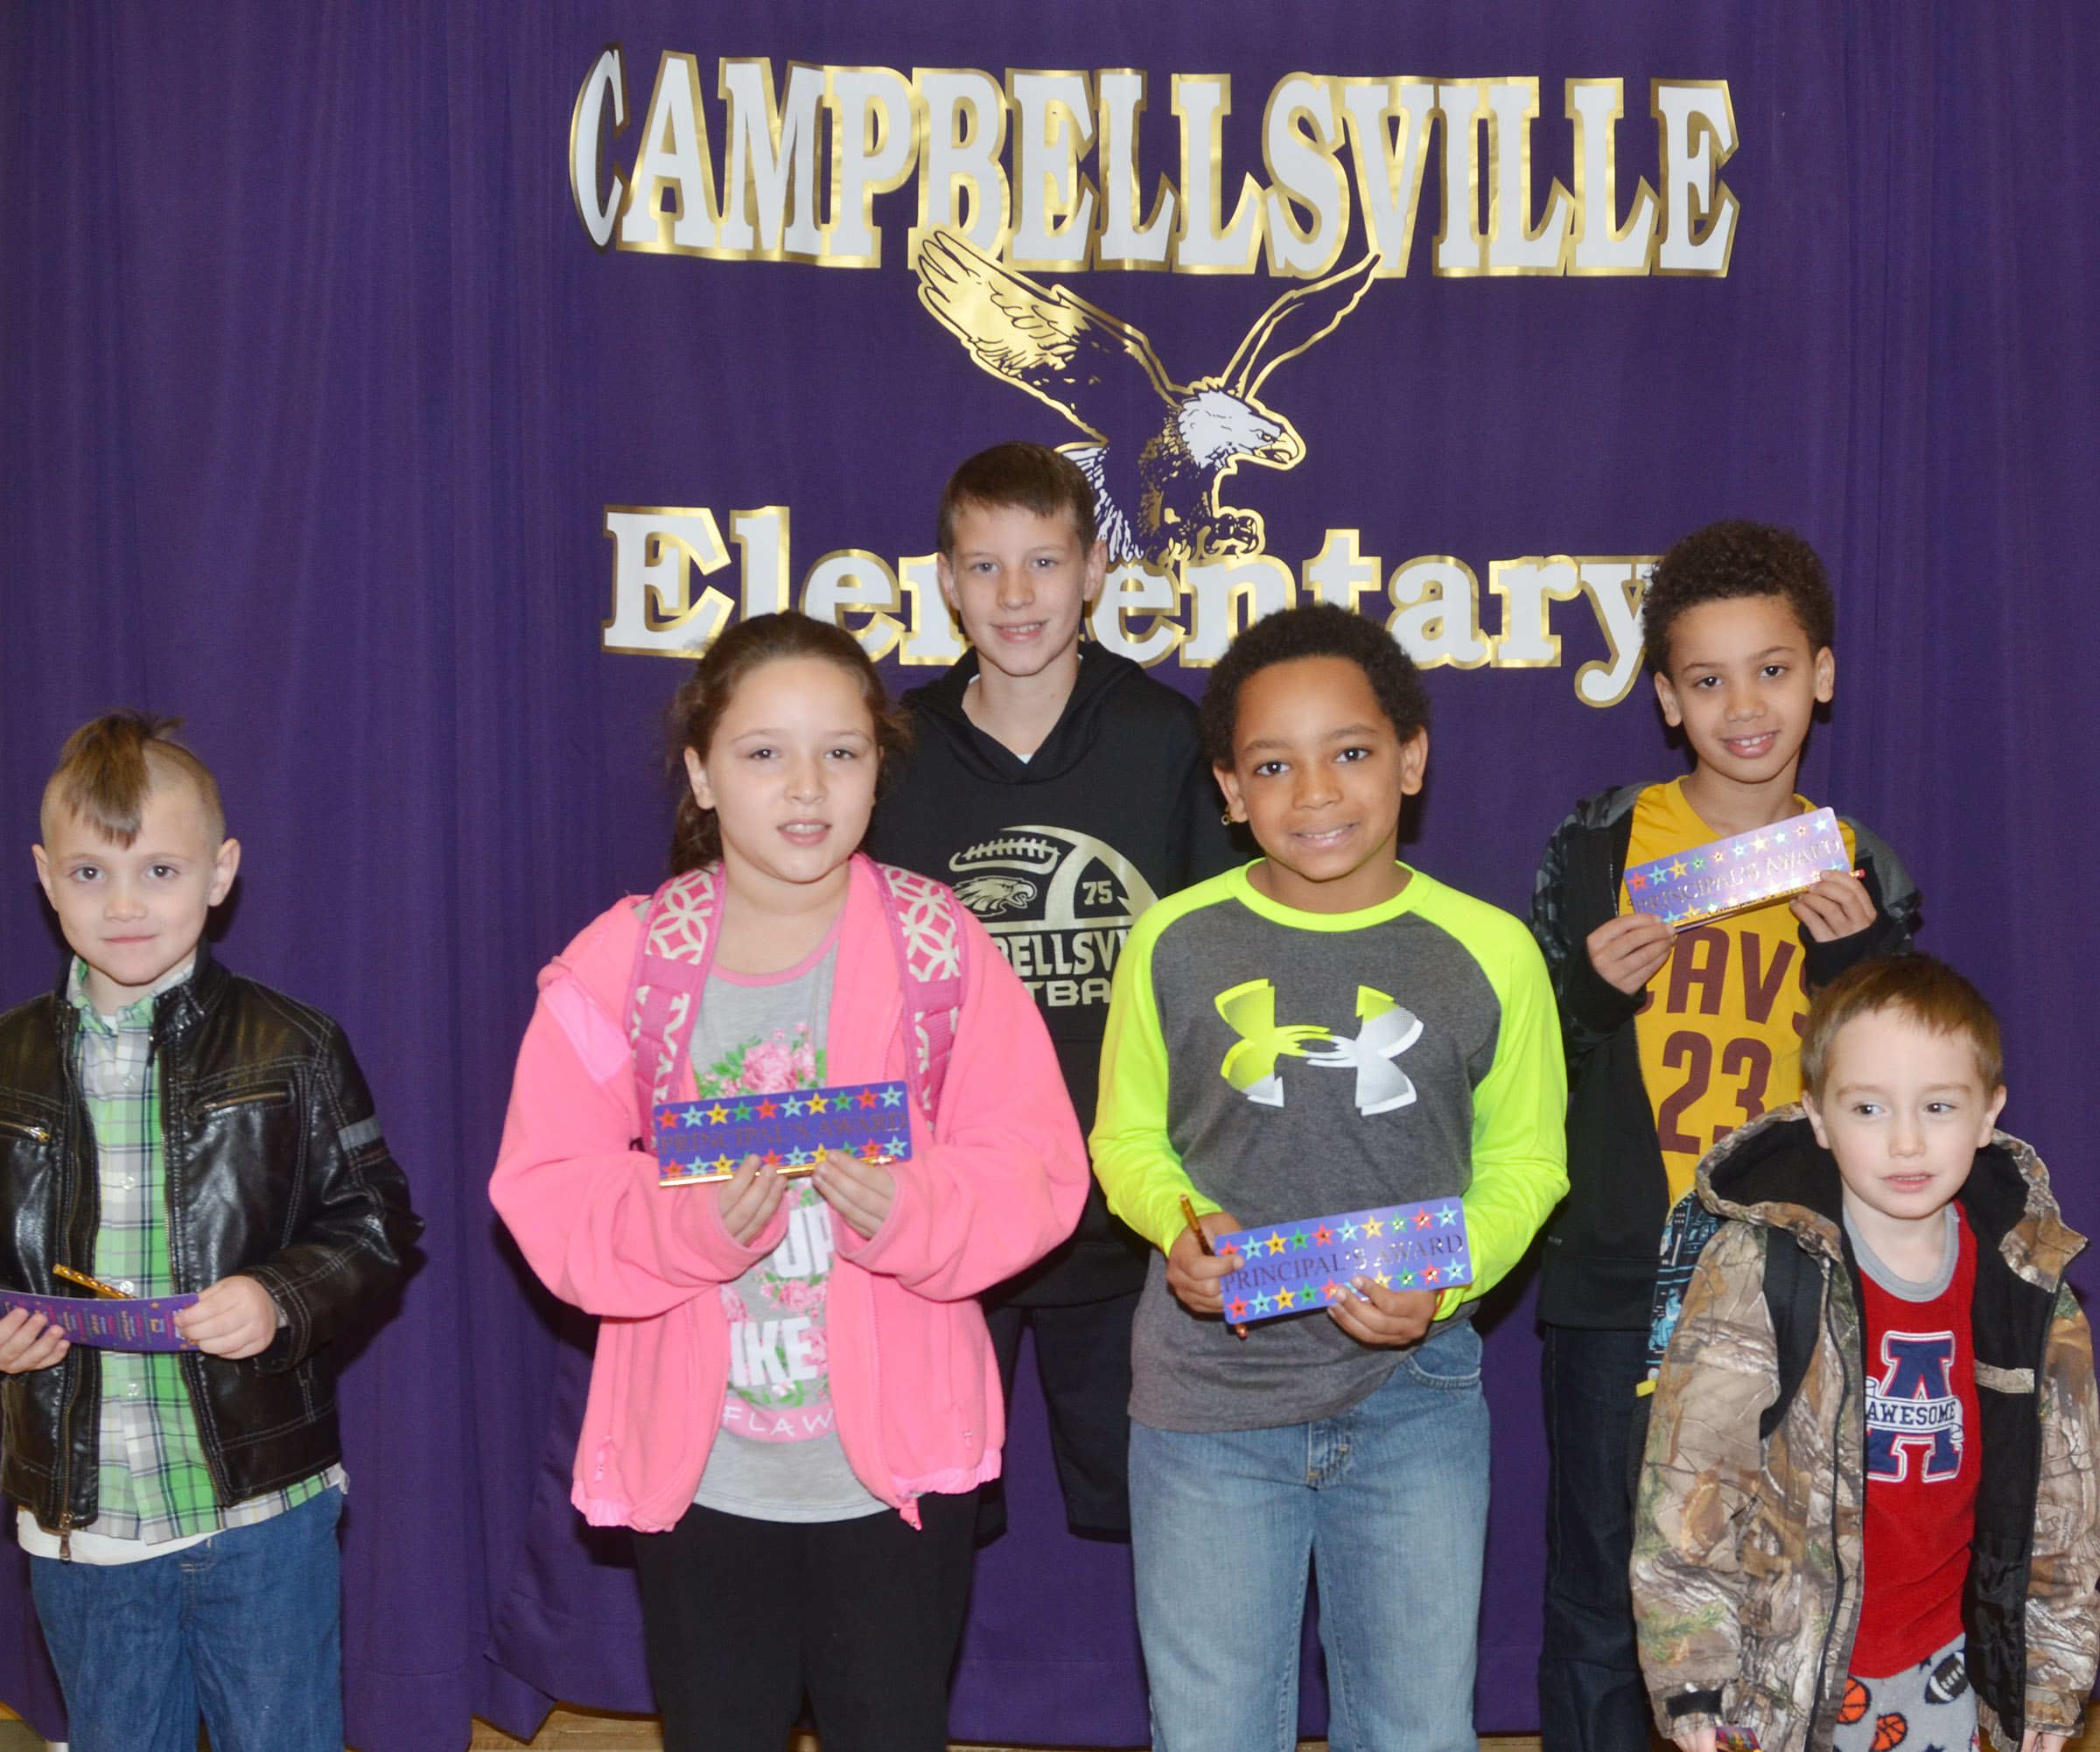 From left are first-grader John Lane, third-grader Keely Rakes, fifth-grader Rowan Petett, fourth-grader Jaden Embry, second-grader Bryant Mayo and kindergartener Joshua Dickens.